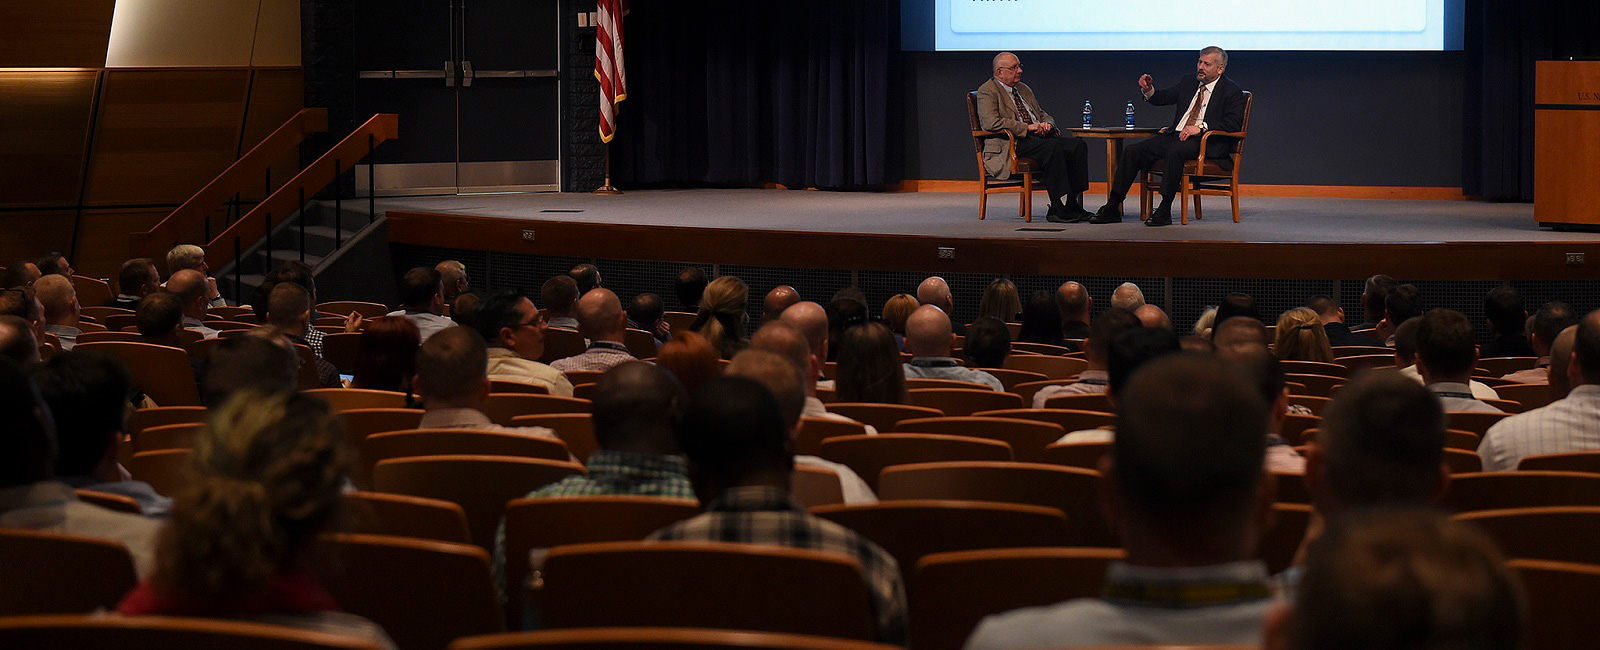 Martin Cook (left), U.S. Naval War College's (NWC) James Bond Stockdale Chair of Professional Military Ethics talks with Karl Marlantes (right), a Marine Corps veteran about Marlantes' experiences and observations about the Vietnam War to NWC students, staff and faculty.